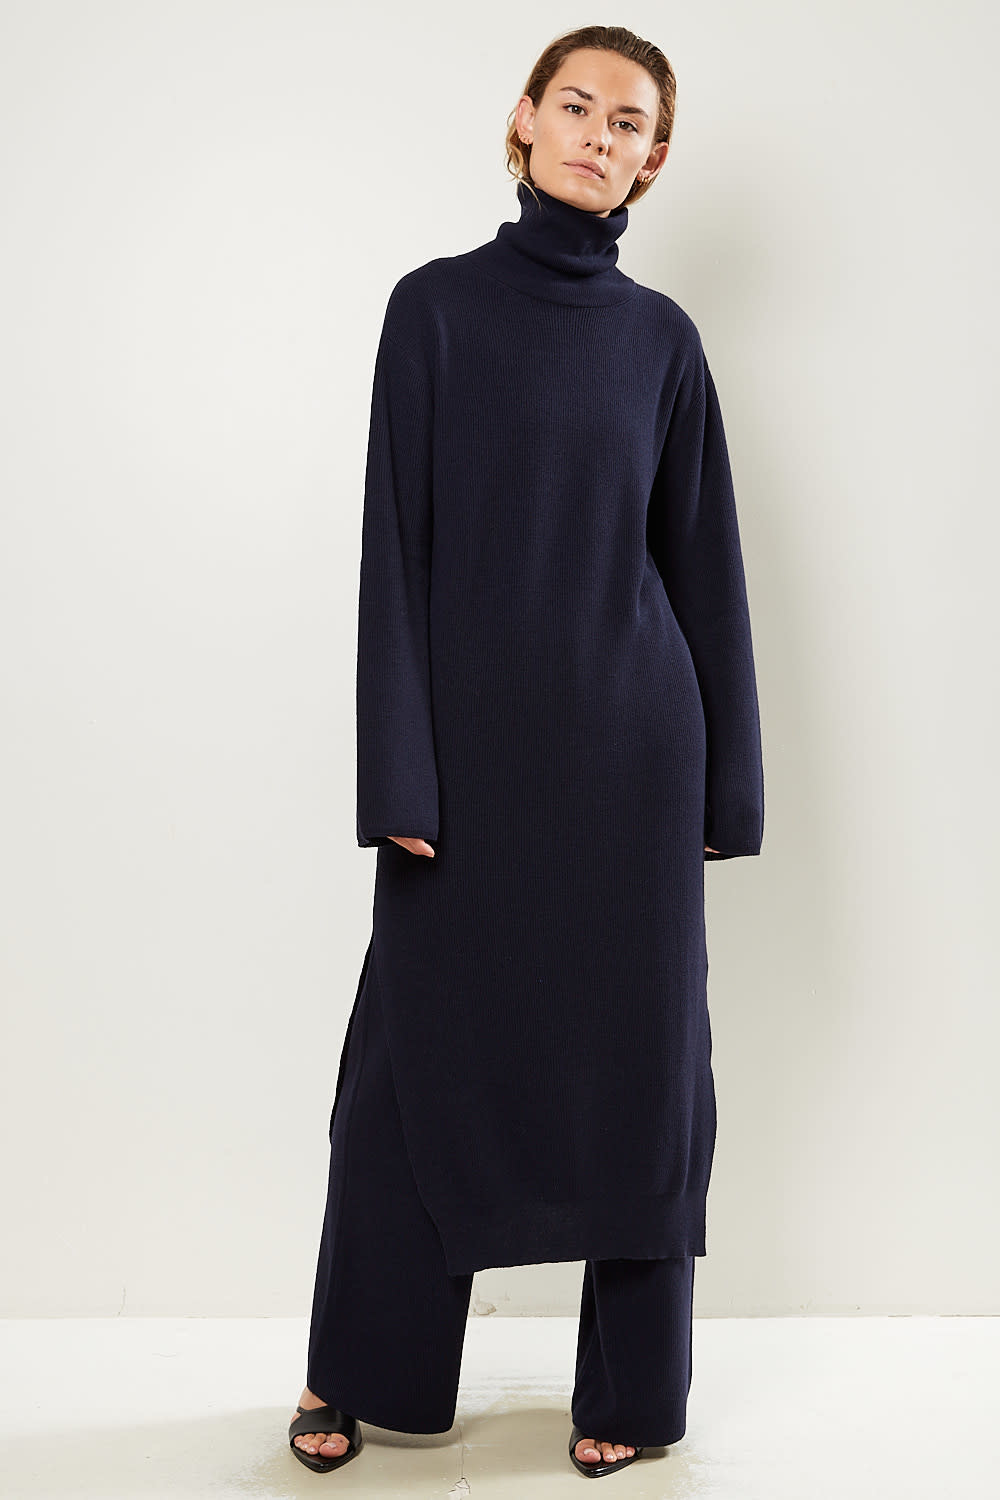 Nanushka - Canaan recycled cashmere knit dress